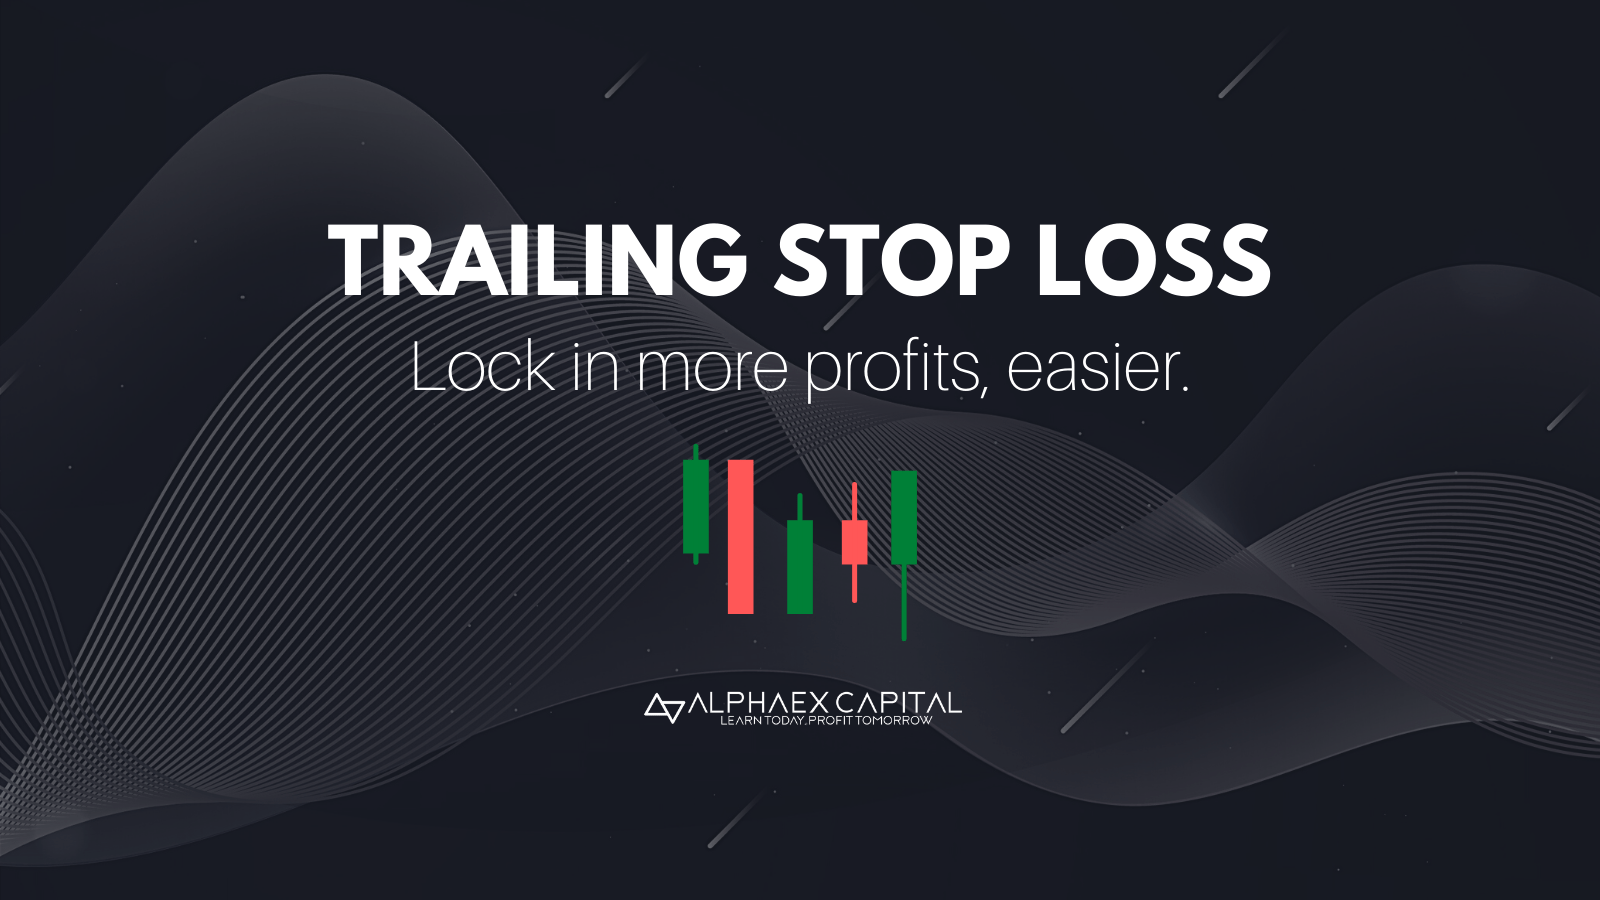 Trailing Stop Loss Orders